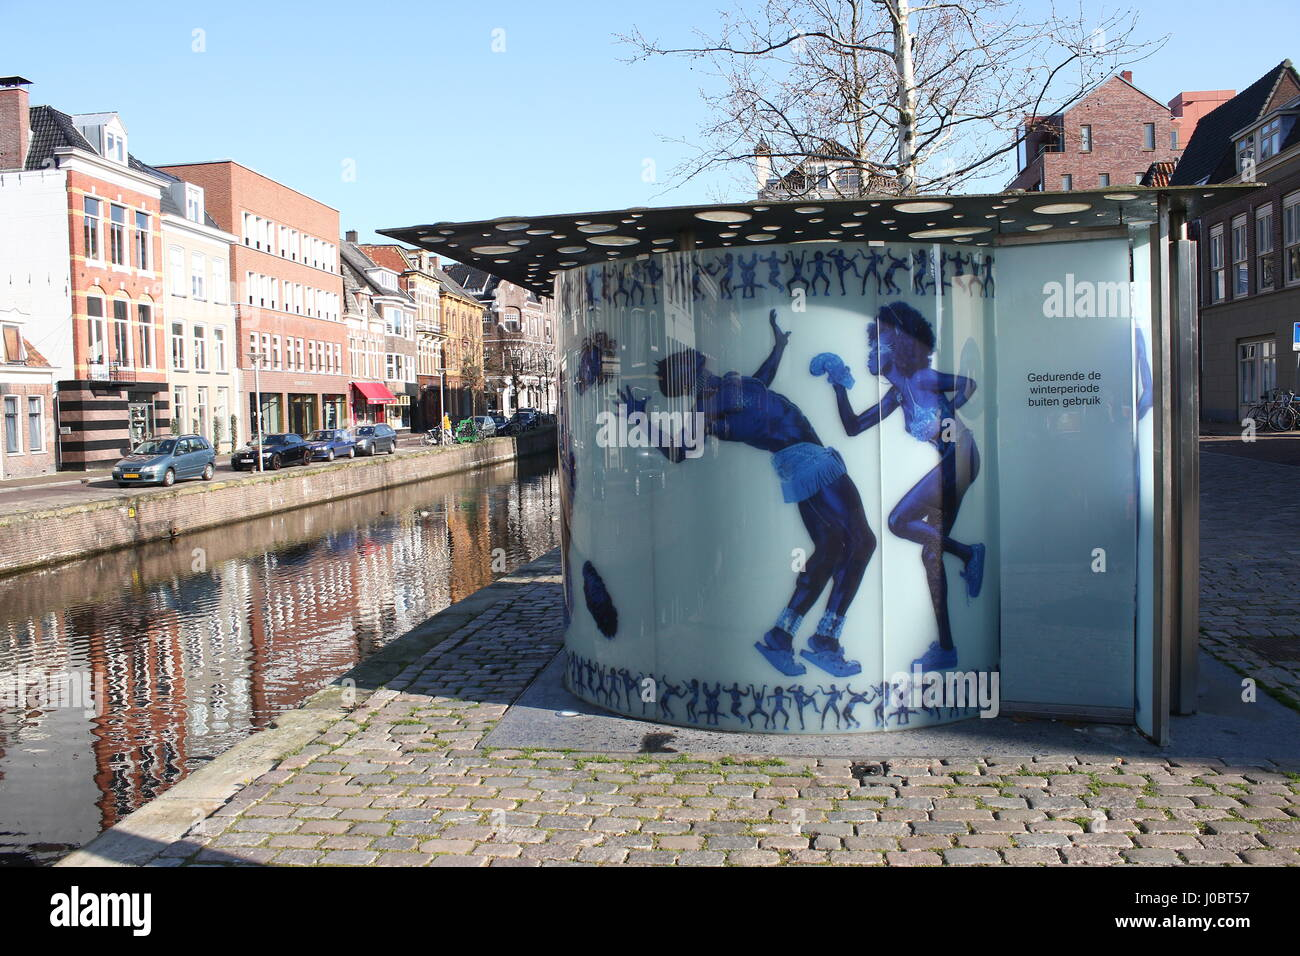 Public toilet designed by Dutch architect Rem Koolhaas (OMA) & photographer Erwin Olaf, at Reitemakersrijge - Stock Image